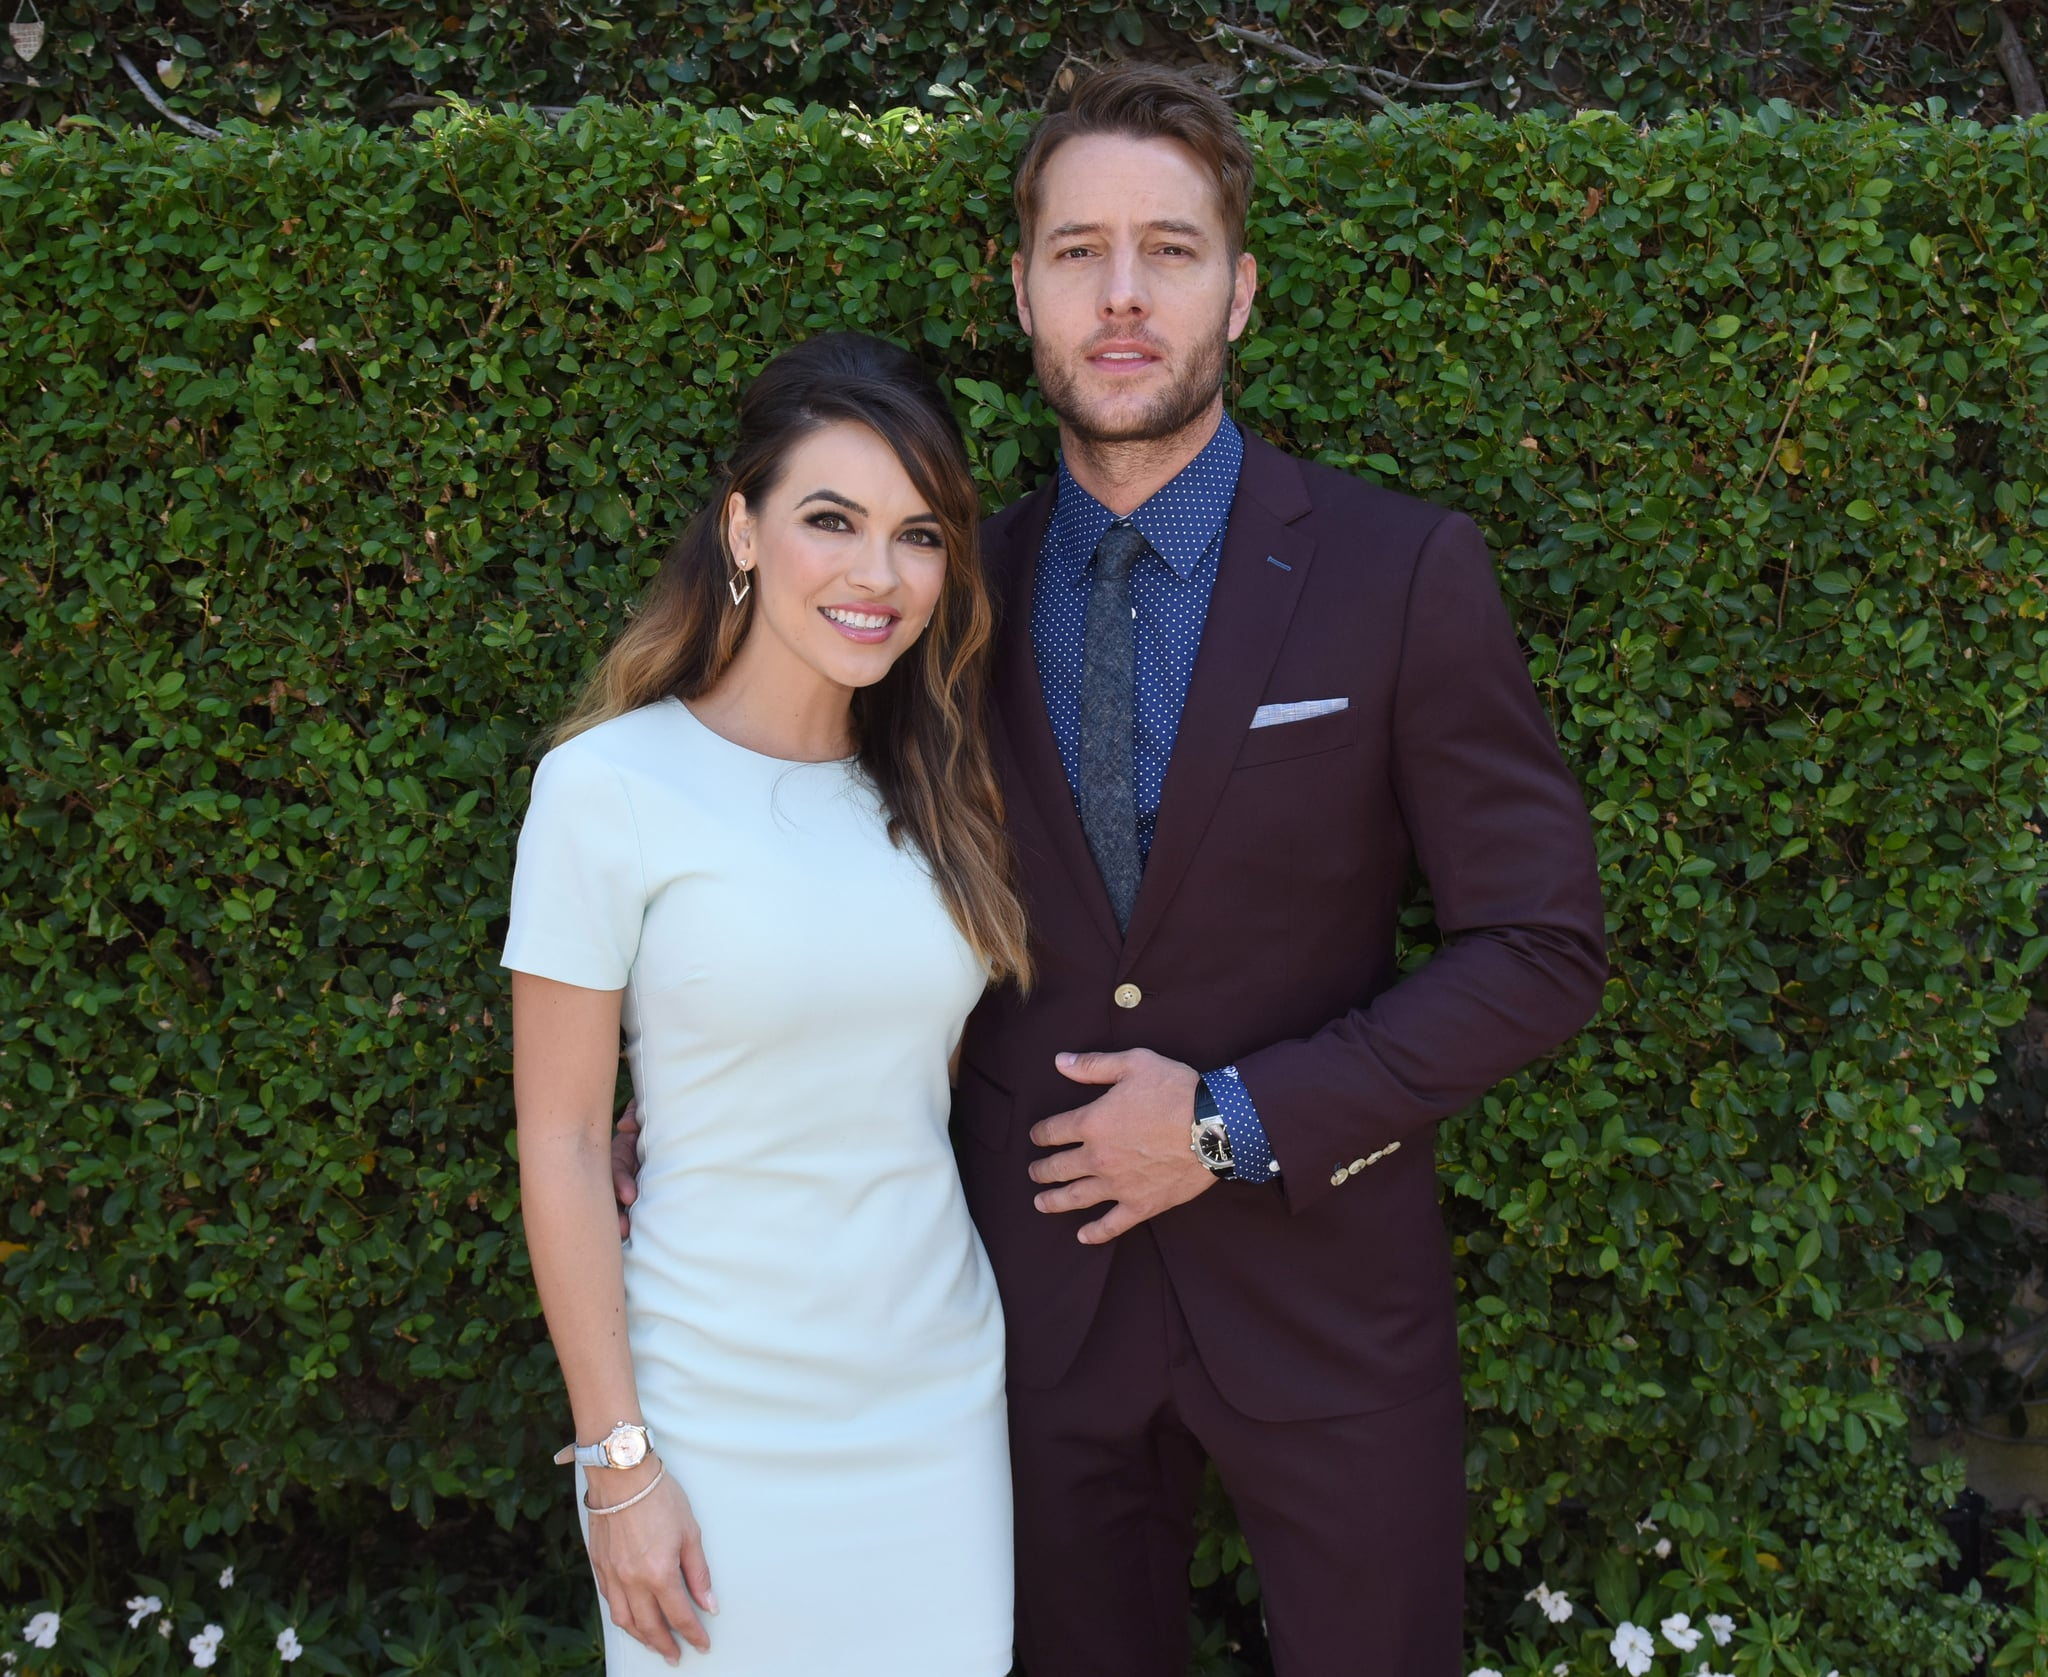 'This Is Us' Star Justin Hartley Gets Married